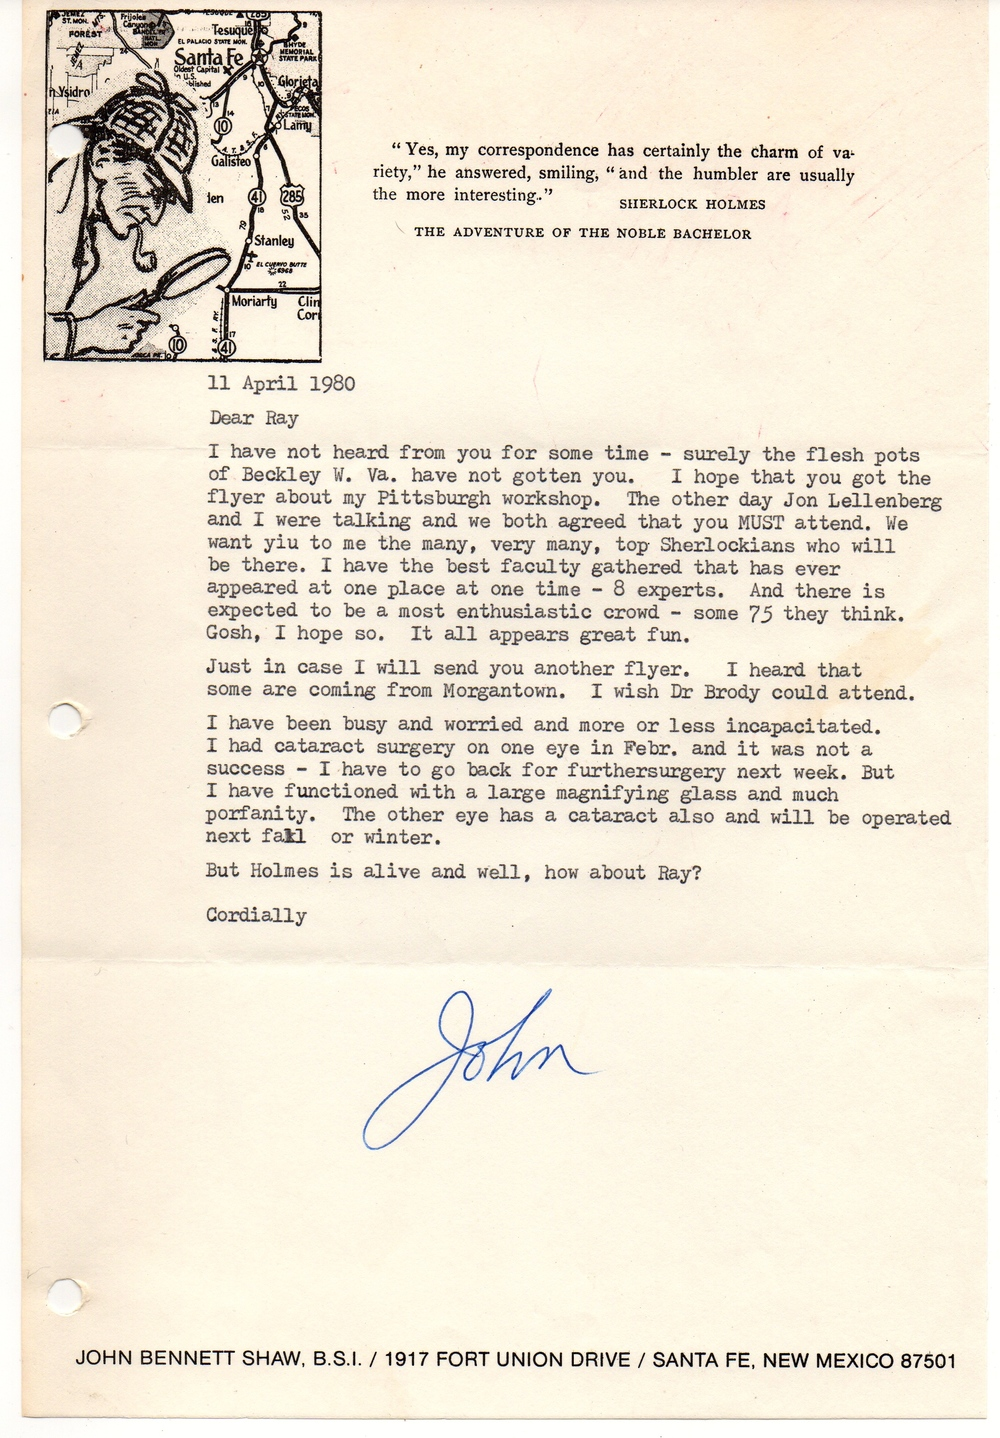 John's note encouraging me to attend his Holmes conference in Pittsburgh. I was working at a newspaper in Beckley, West Virginia at the time.